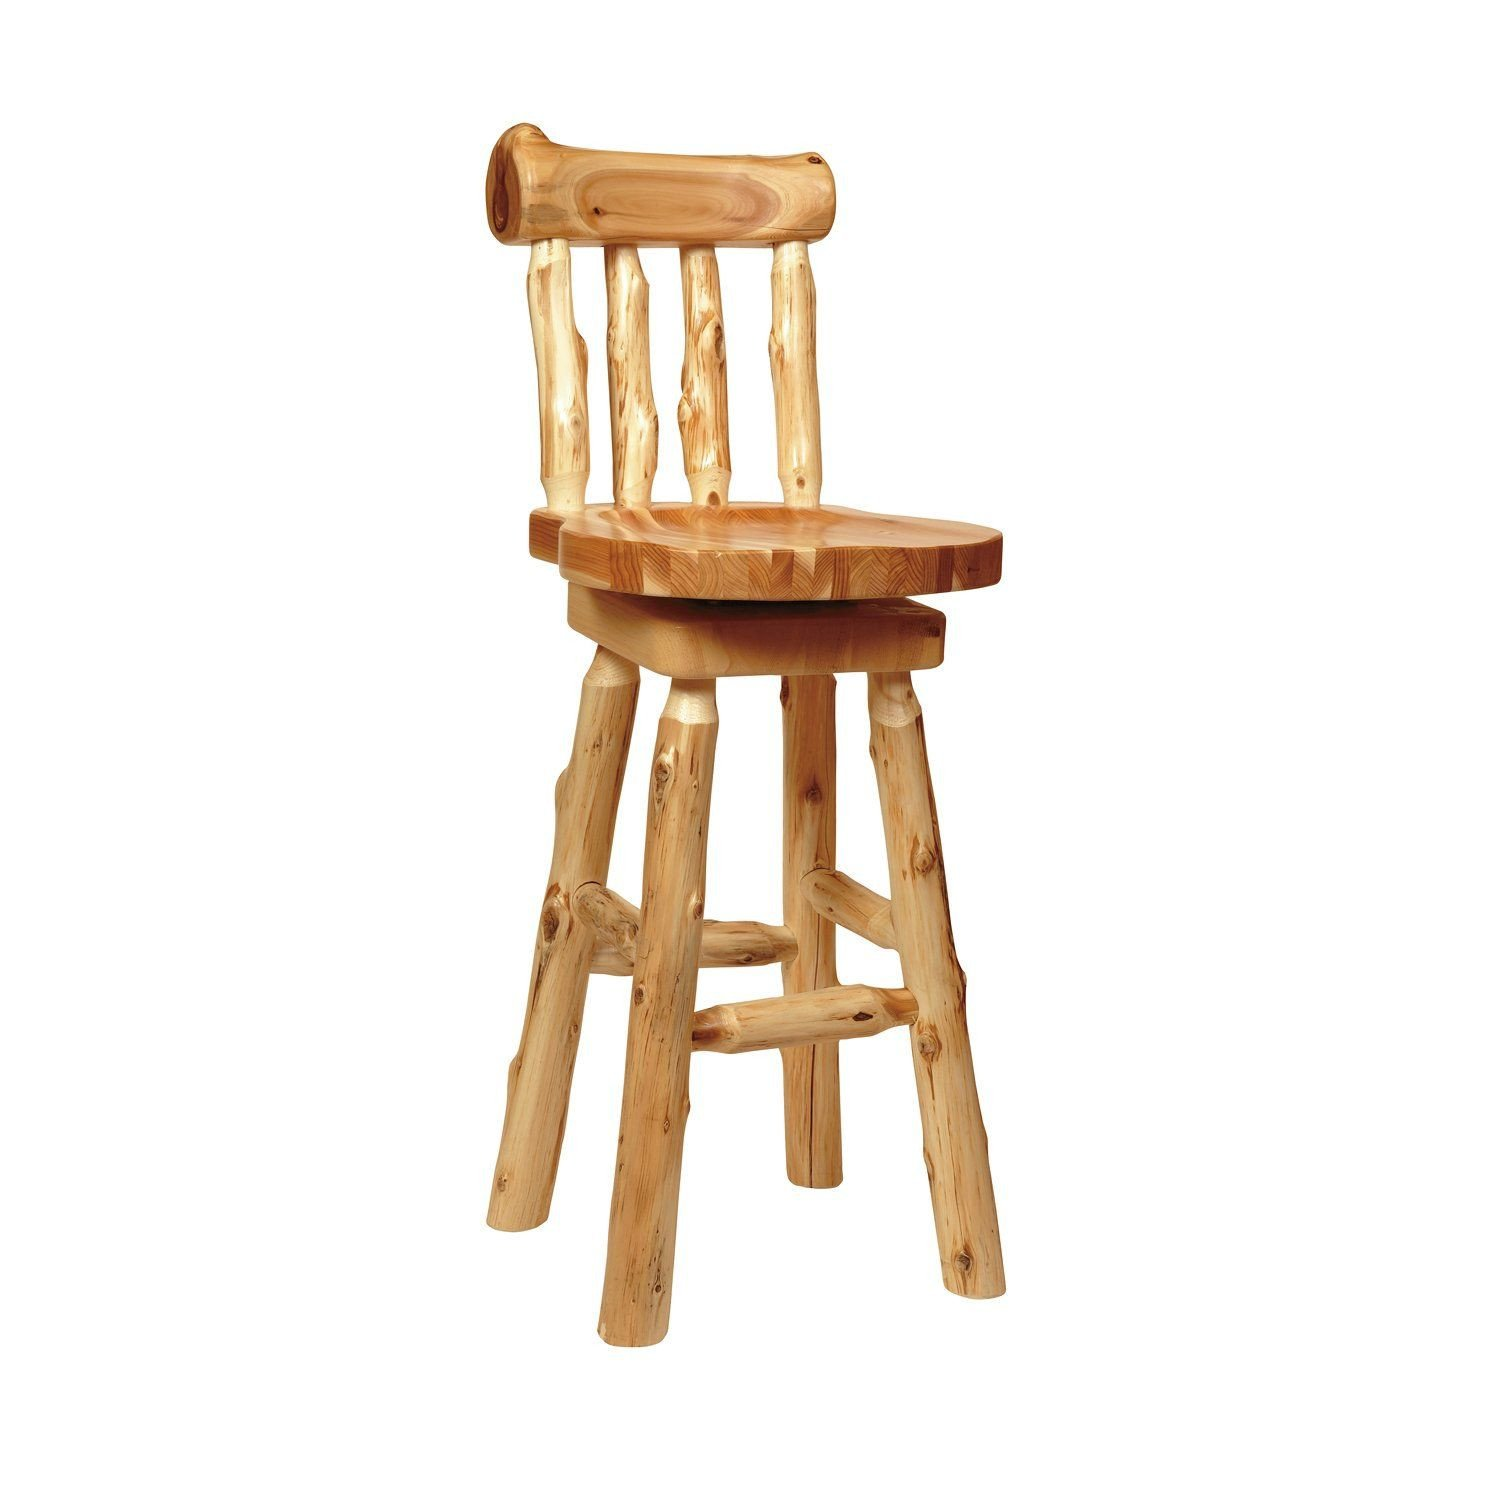 Cedar Log Bedroom Furniture Beautiful Shop Fireside Lodge Furniture 1622 Cedar Log Bar Stool at